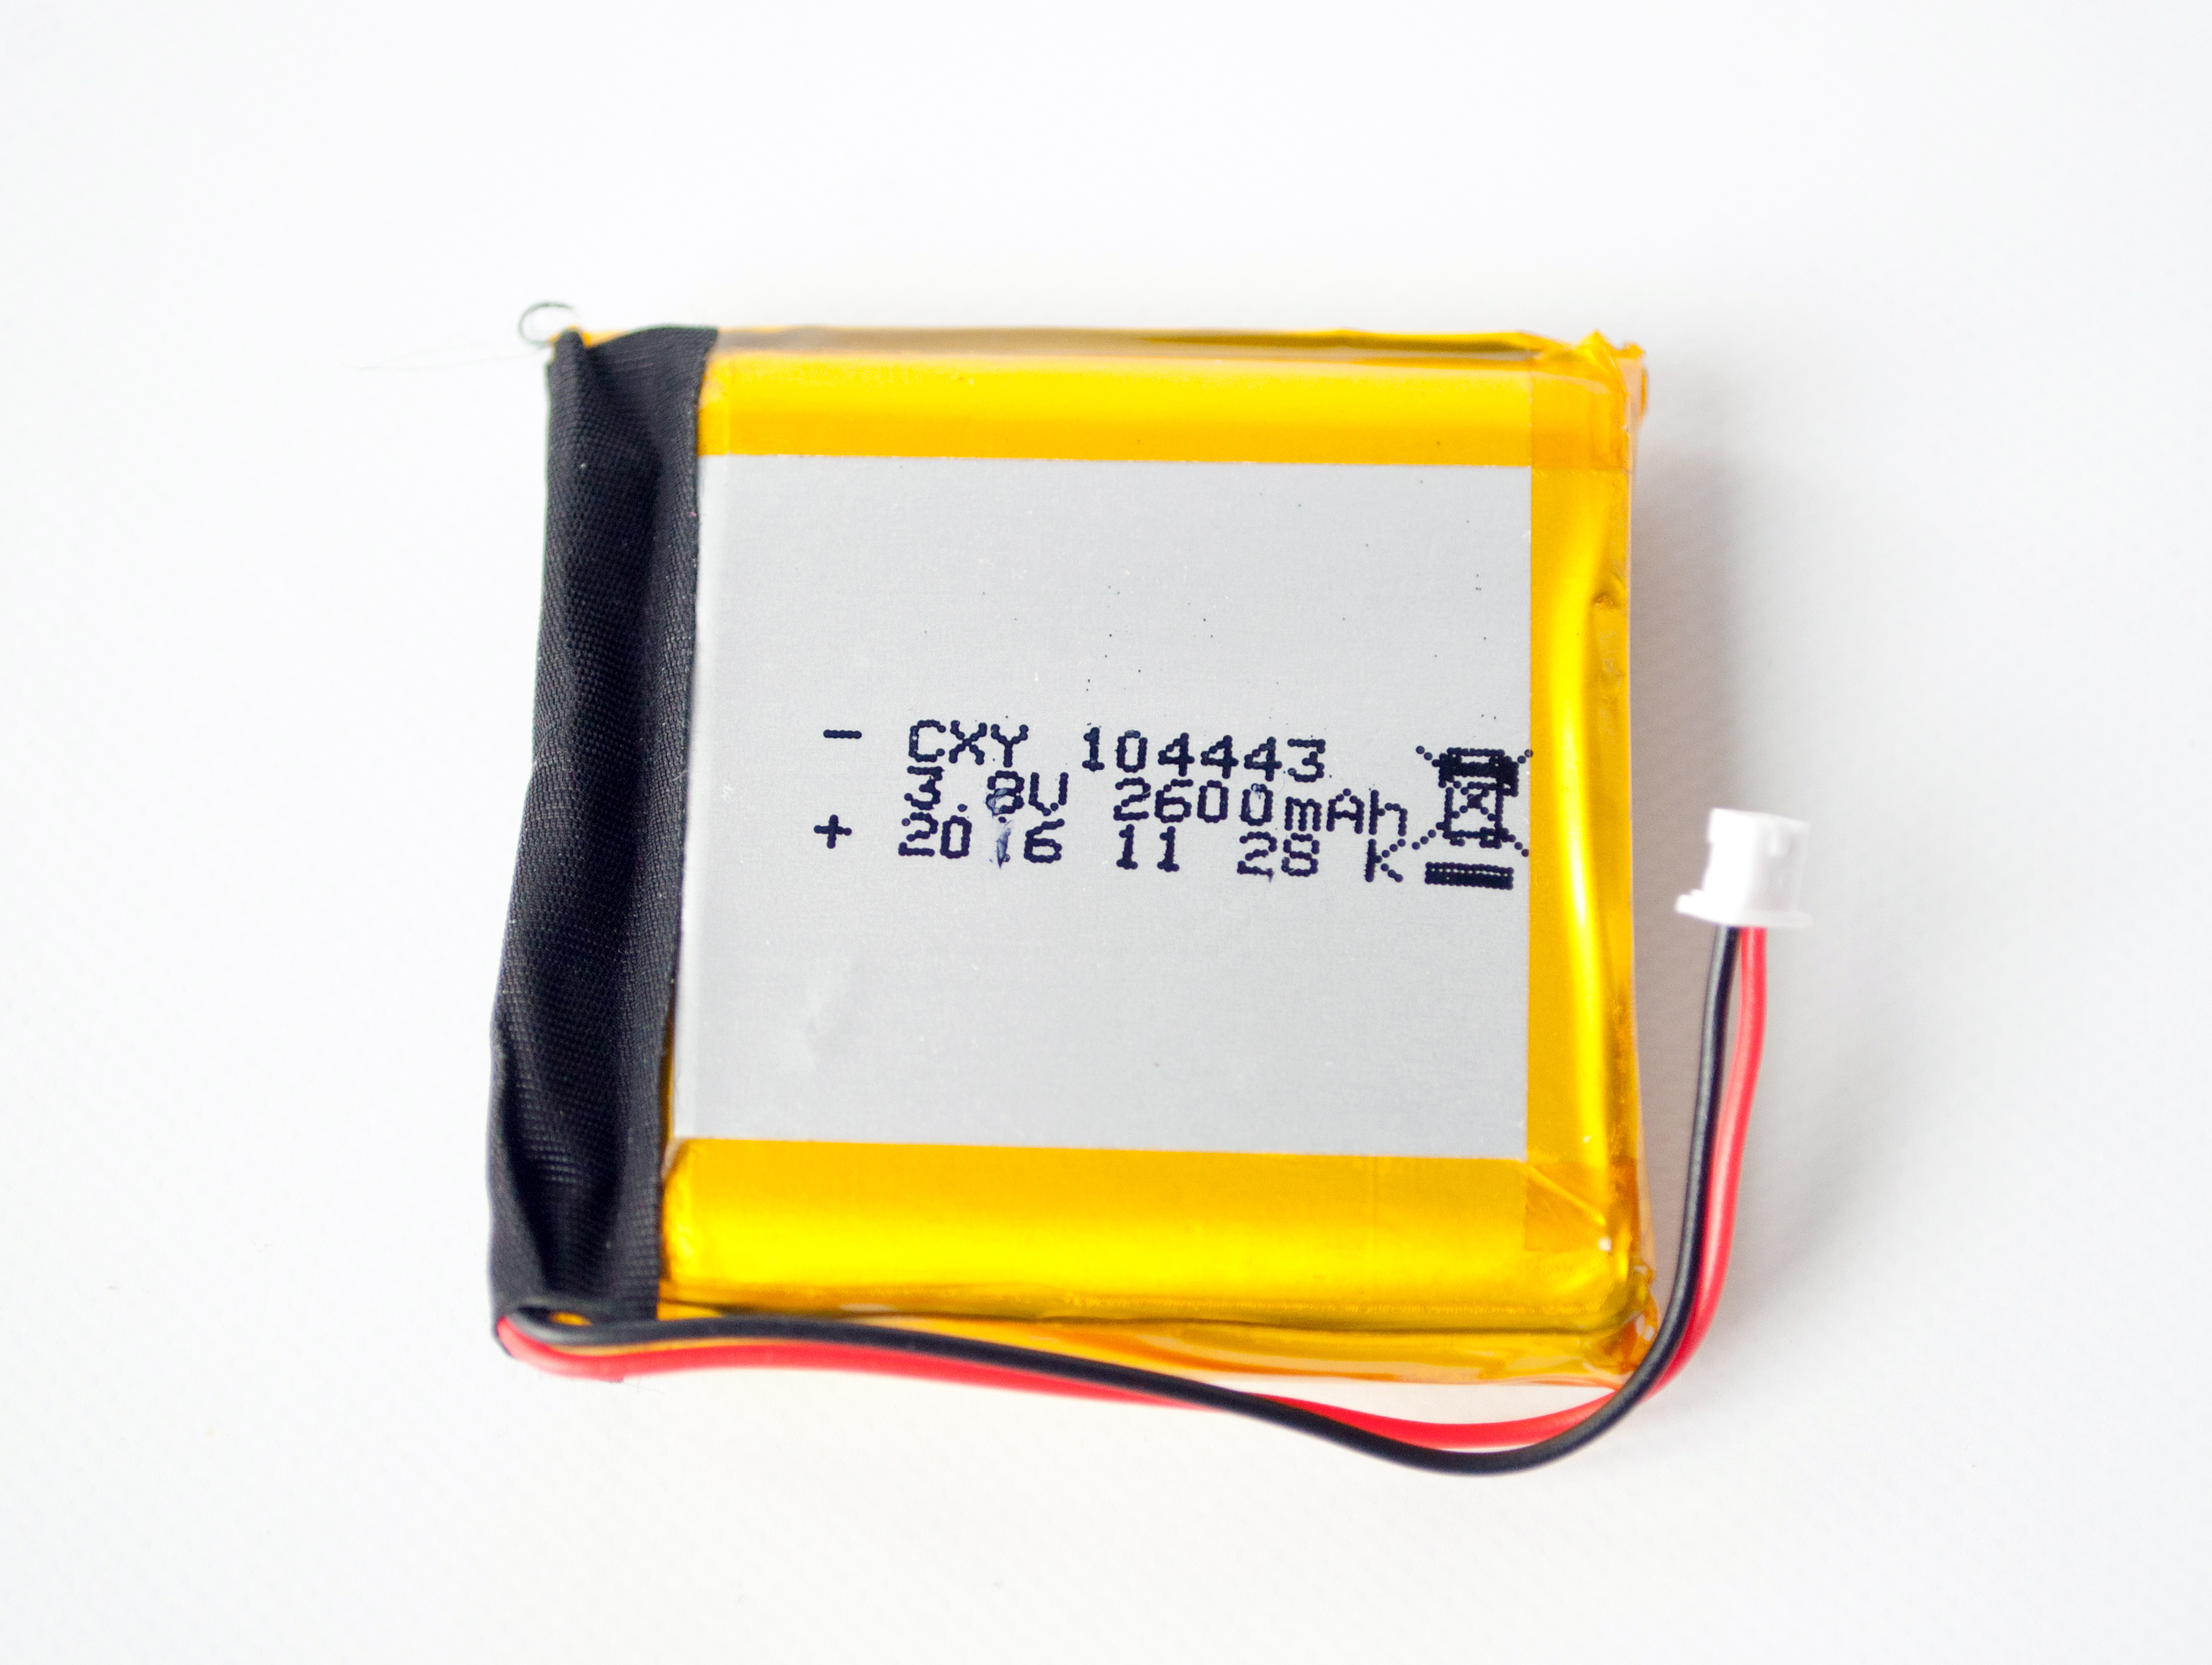 PatrolEyes SC-DV7 HD 2600mAh Replacement Battery